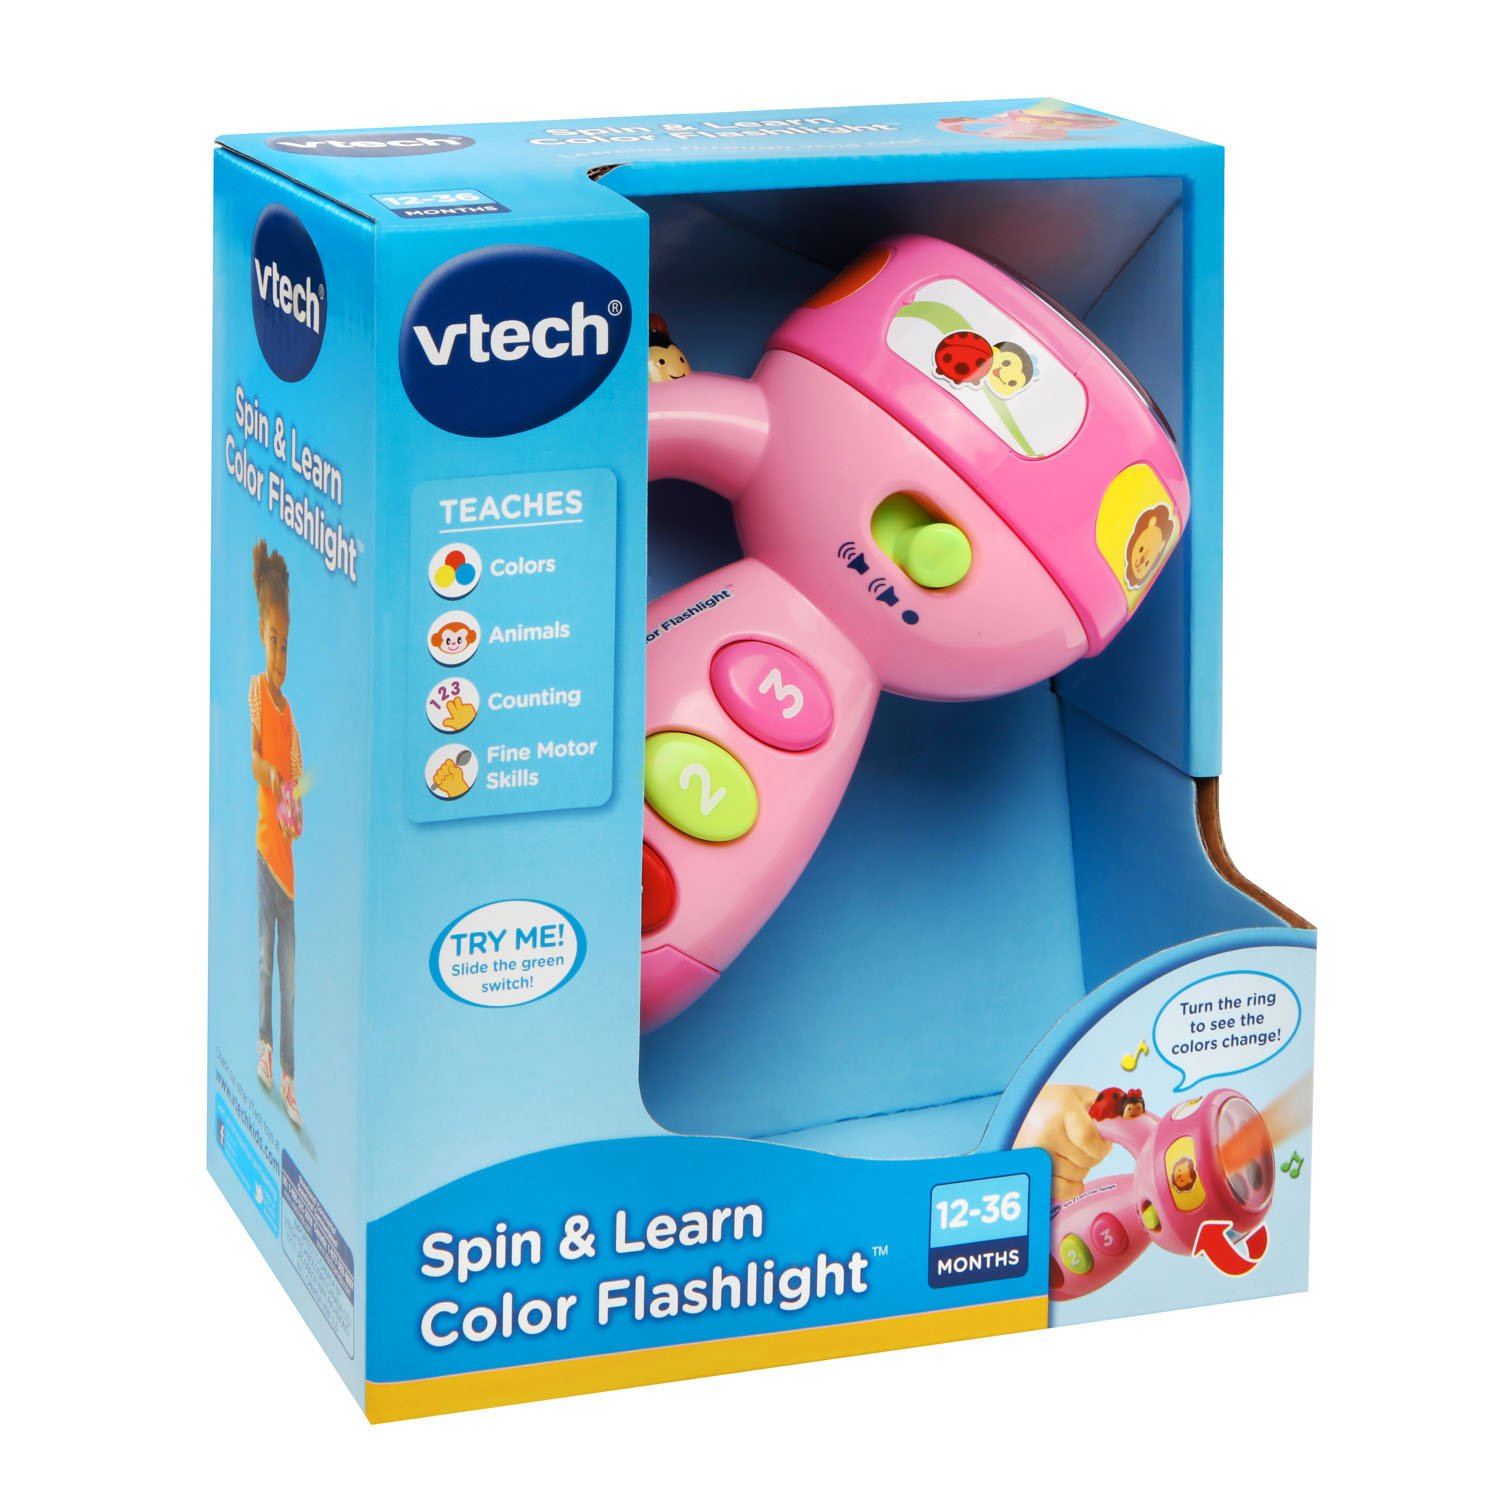 VTech Spin and Learn Color Flashlight Amazon Exclusive, Pink by VTech (Image #6)